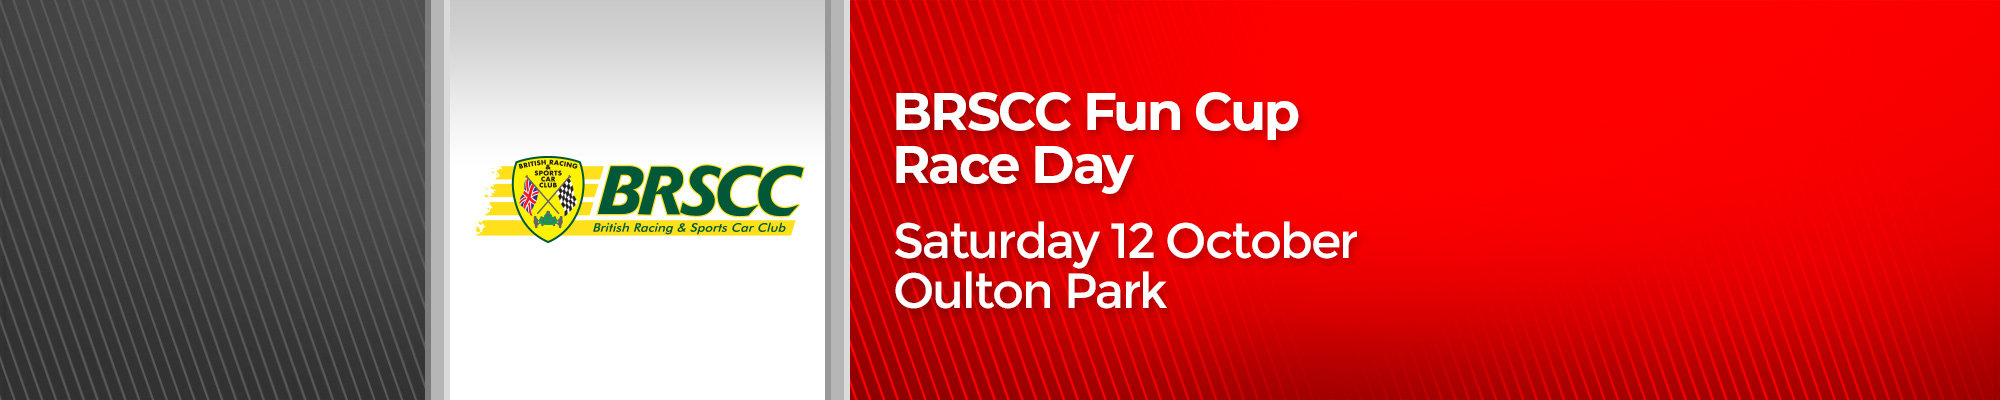 BRSCC Fun Cup Race Day